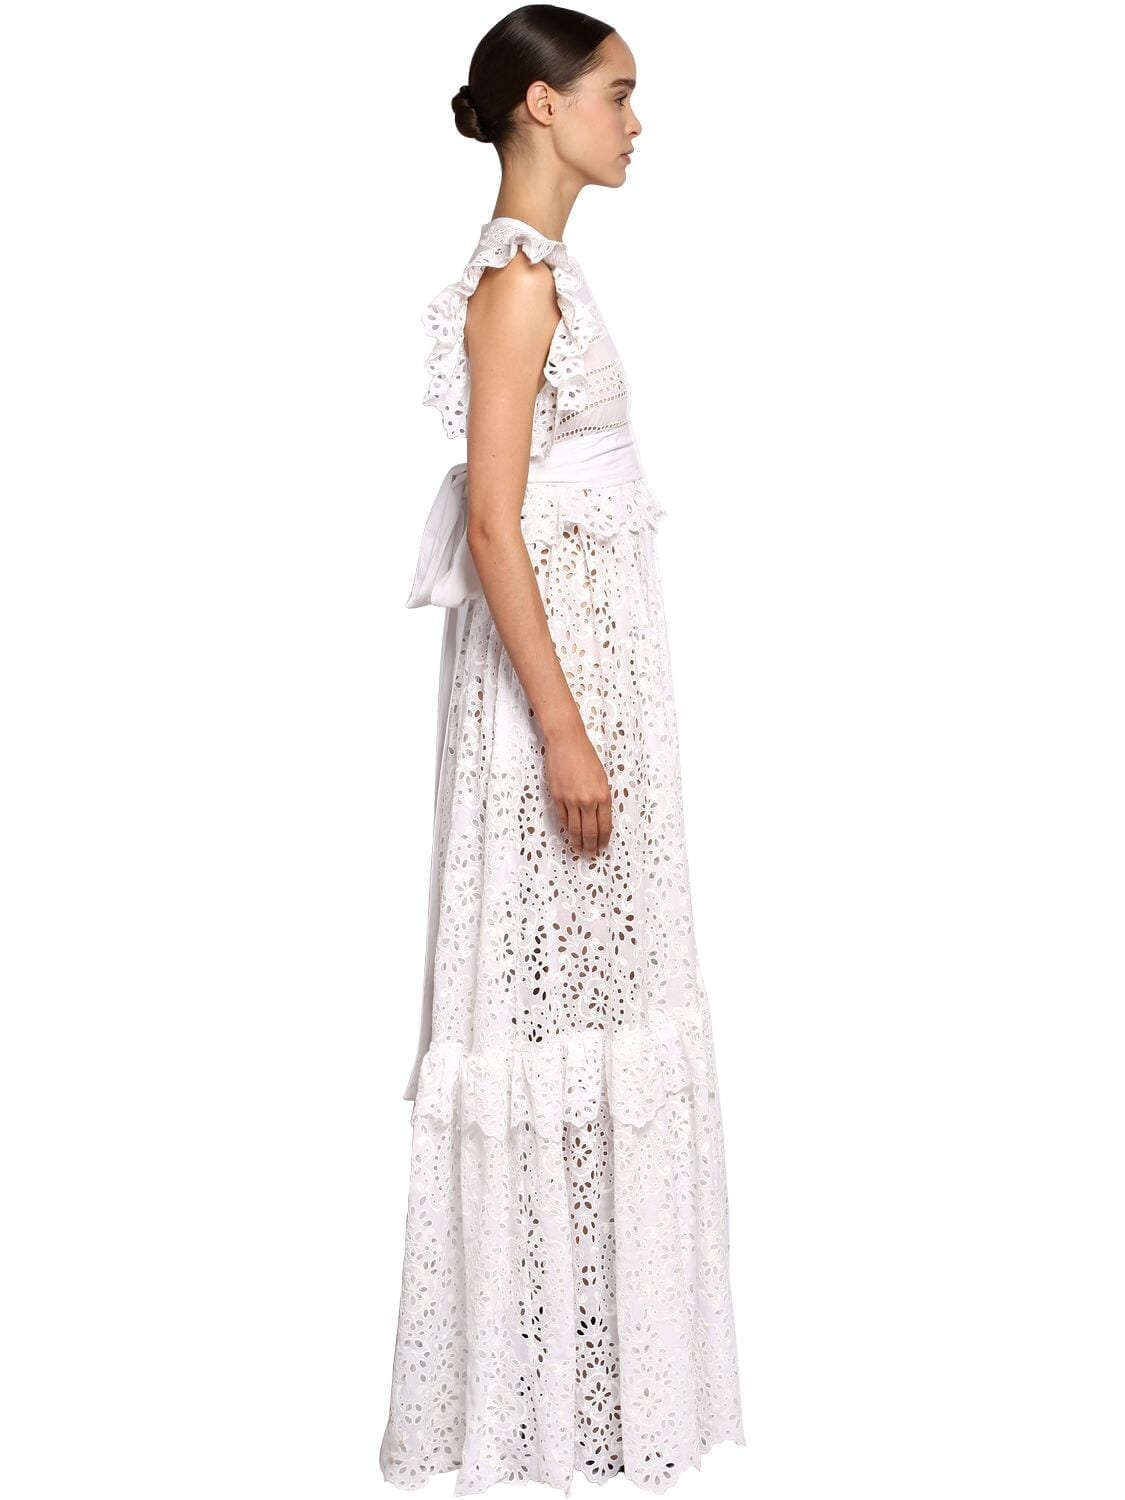 ELIE SAAB Lace & Poplin Ruffles Long Dress